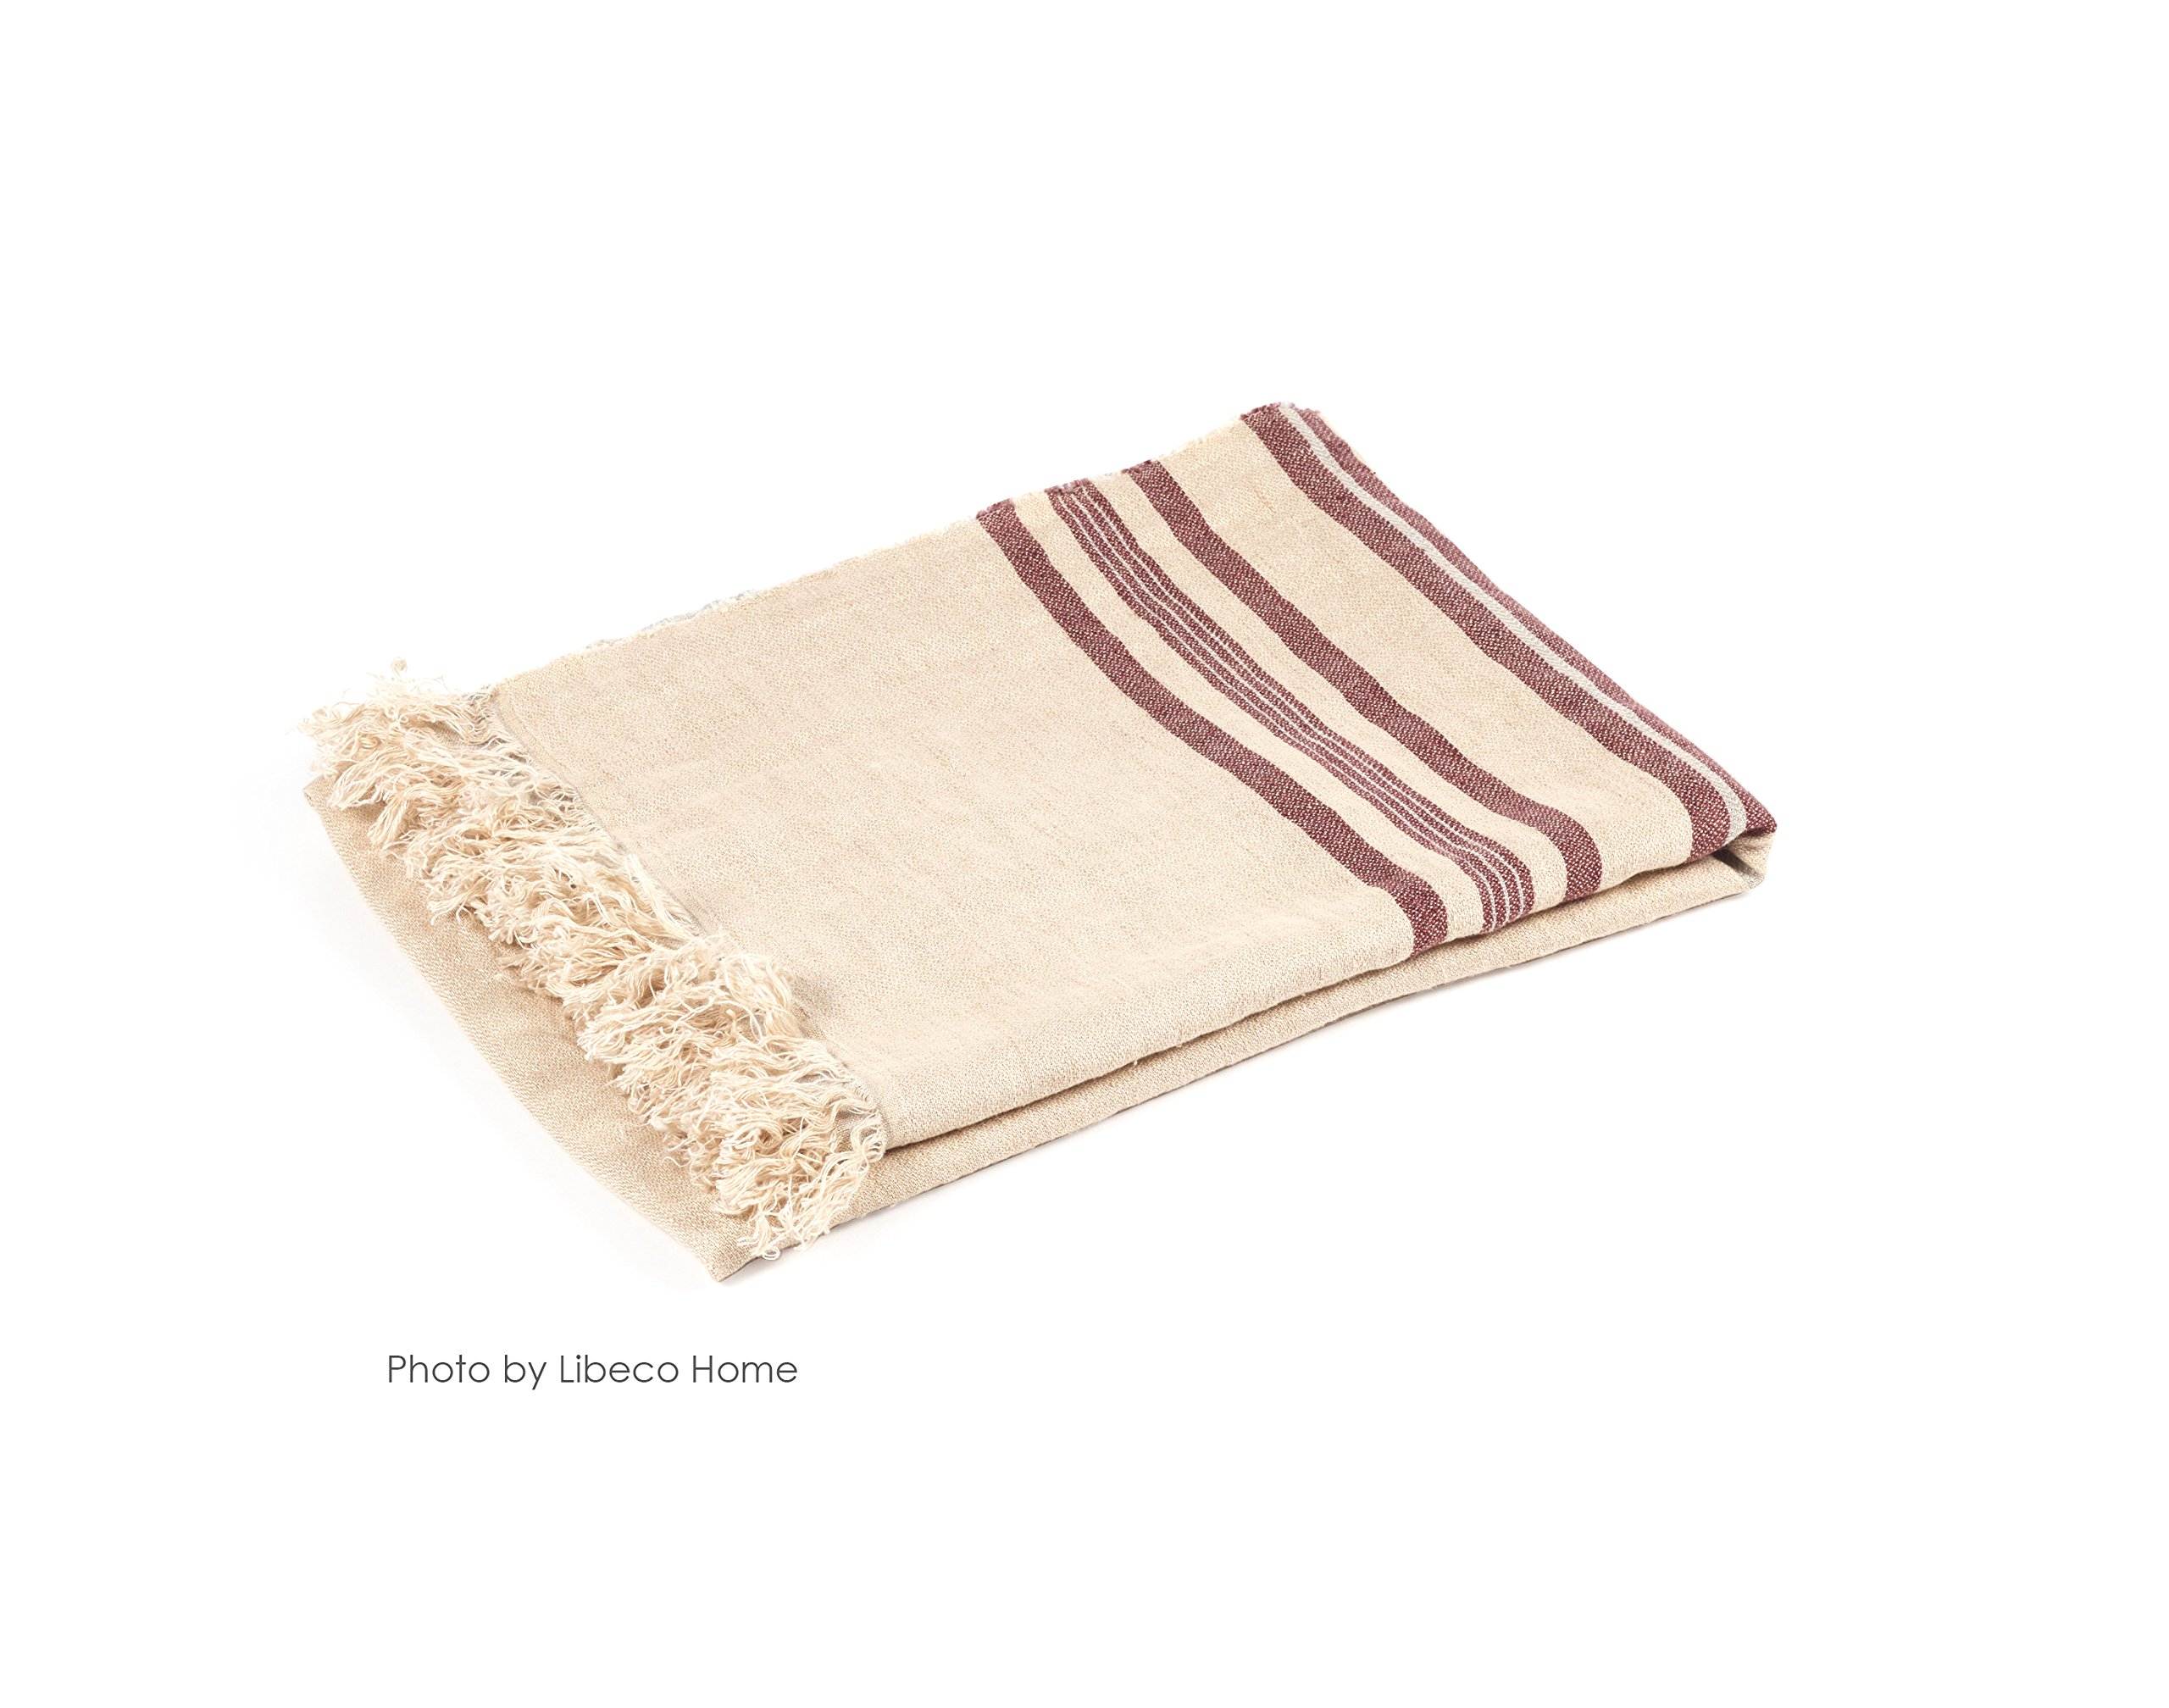 Libeco The Belgian Towel 100% Linen Fouta Towel in Camel Stripe 43'' x 71'' by Libeco